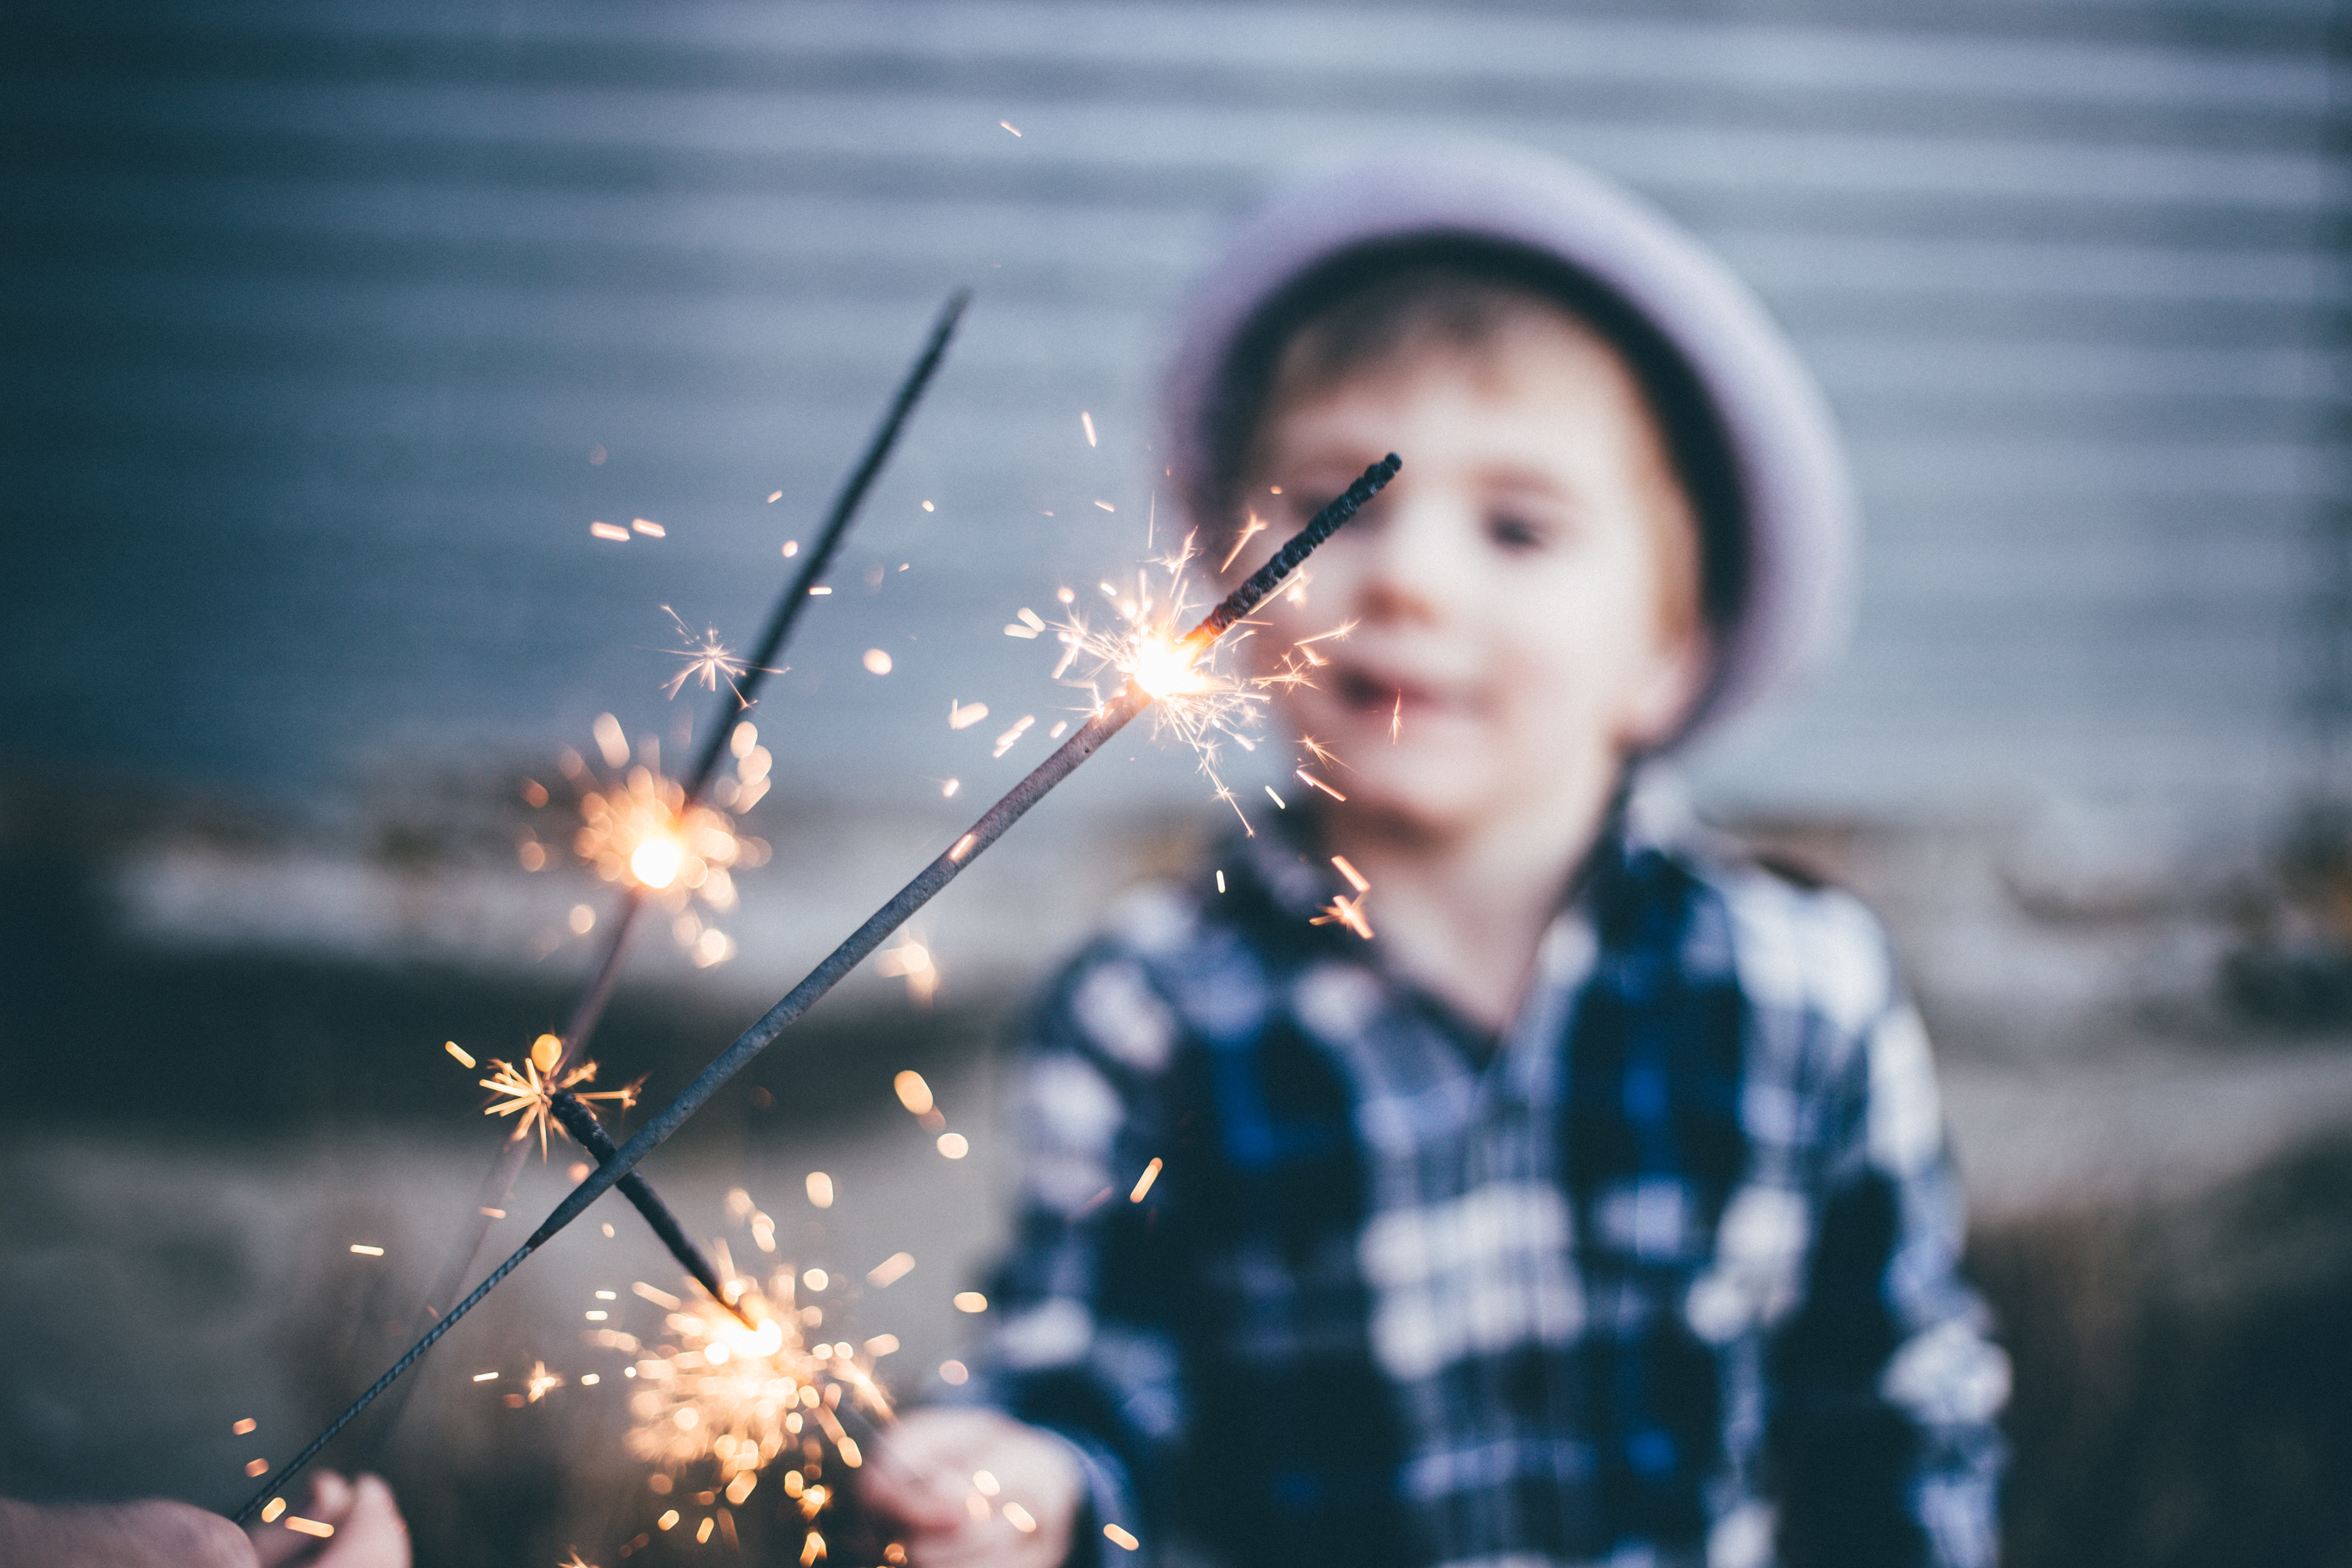 Kid with Neon Colored Sparklers image